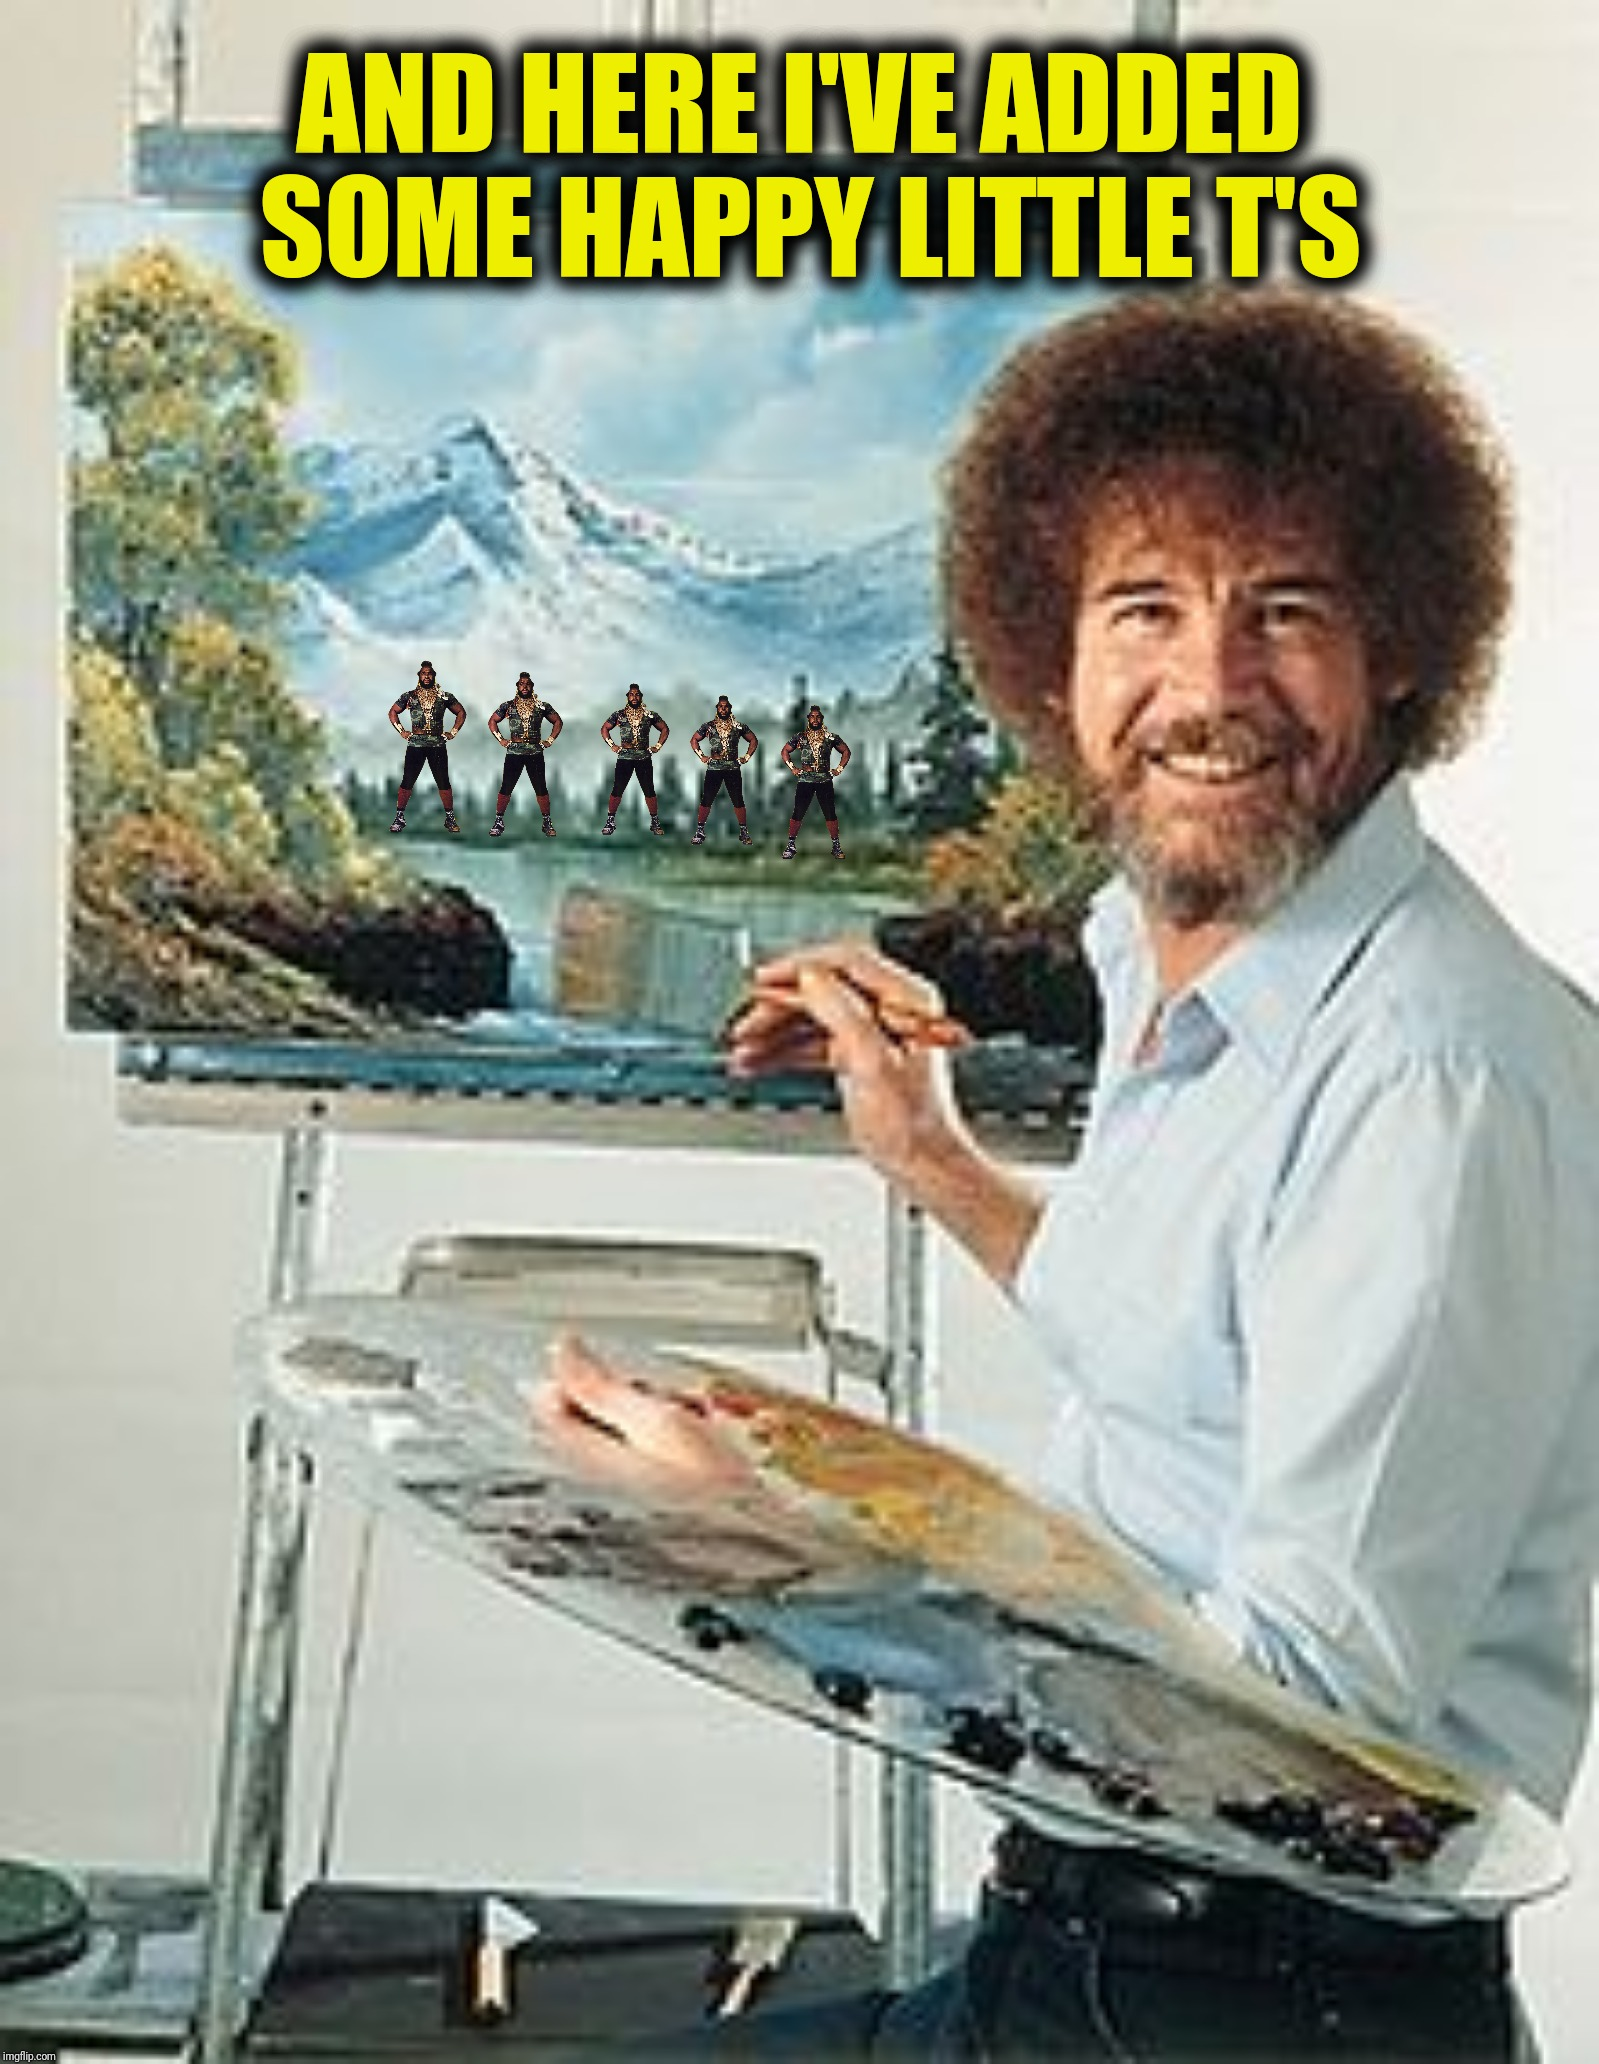 Bad Photoshop Sunday presents:  Not sure they're happy (or little) | AND HERE I'VE ADDED SOME HAPPY LITTLE T'S | image tagged in bad photoshop sunday,mr t,bob ross,happy little trees | made w/ Imgflip meme maker